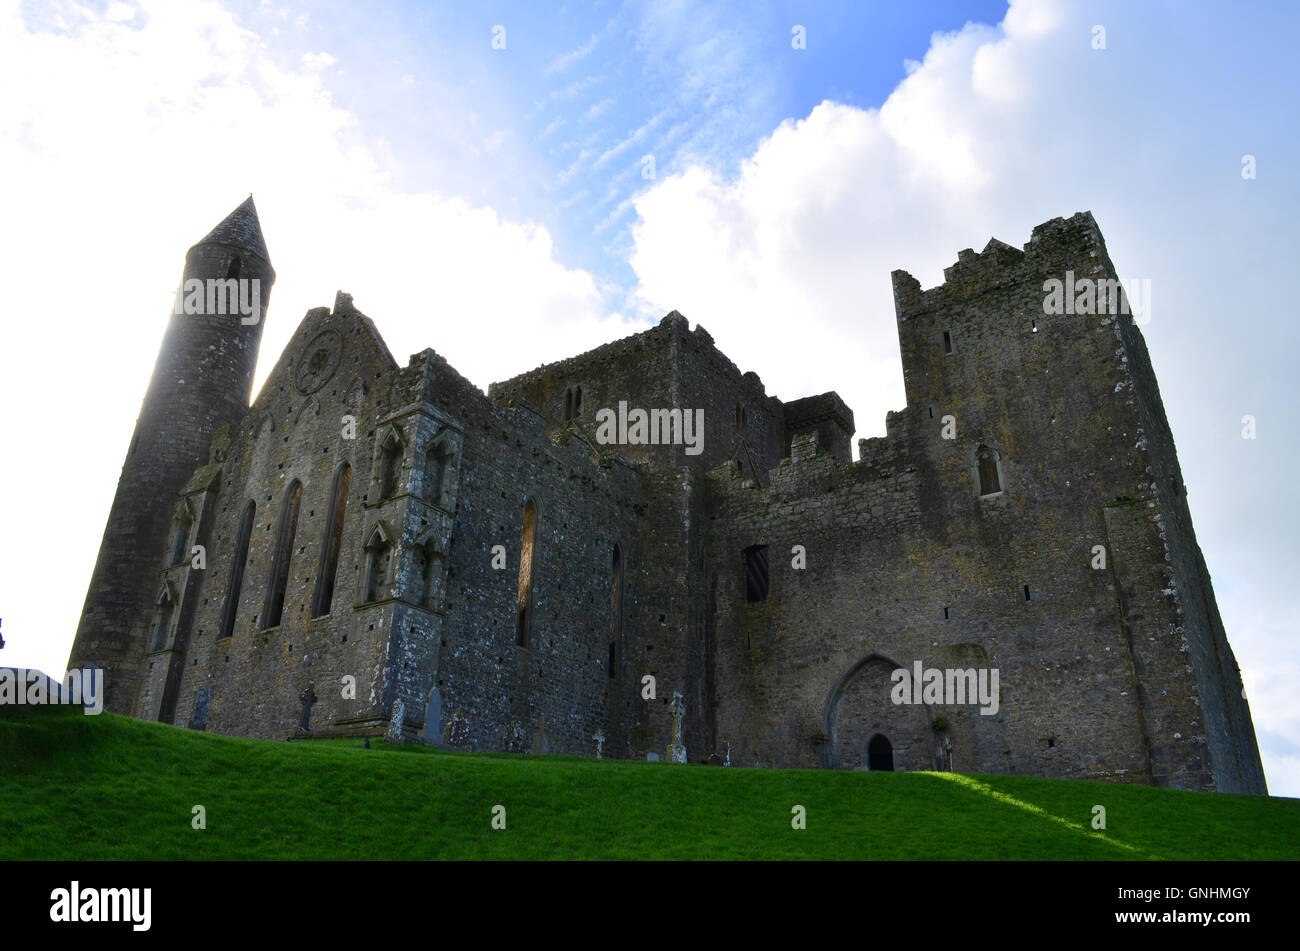 Looking Up at the Rock of Cashel in Ireland - Stock Image